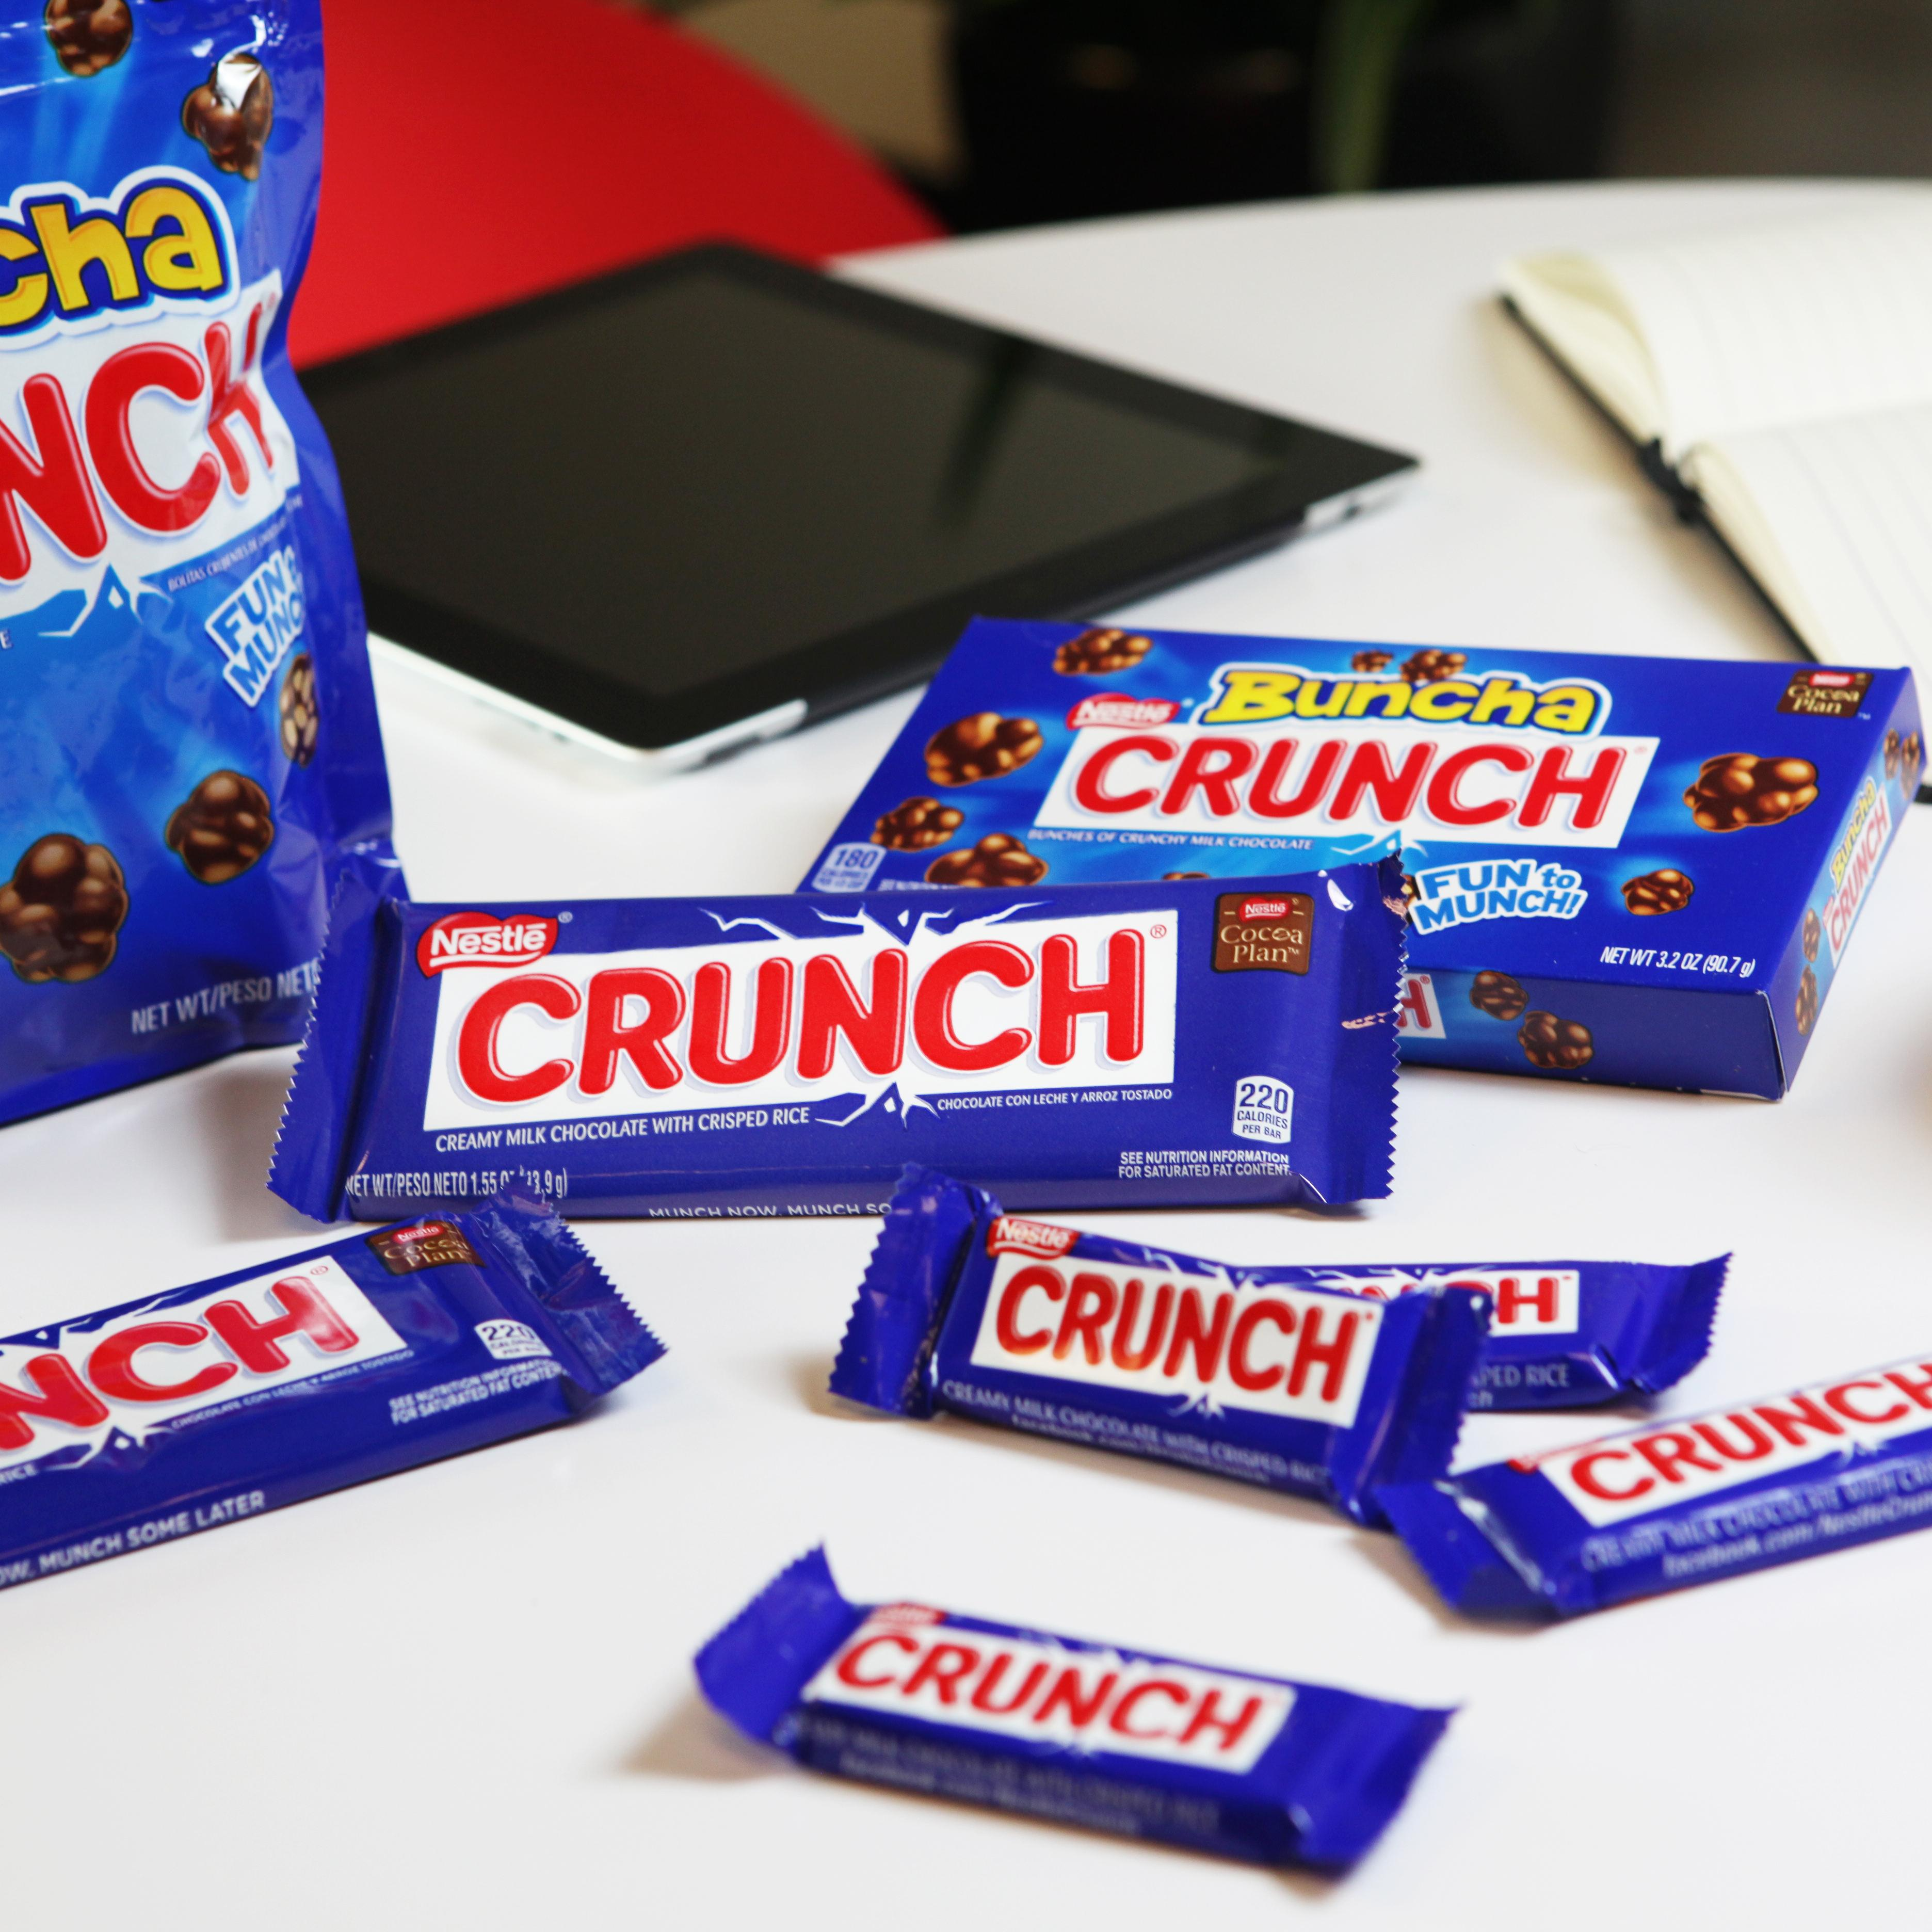 Amazon.com : Nestle Crunch Funsize Bag, 11 Ounce (Pack of 12 ...